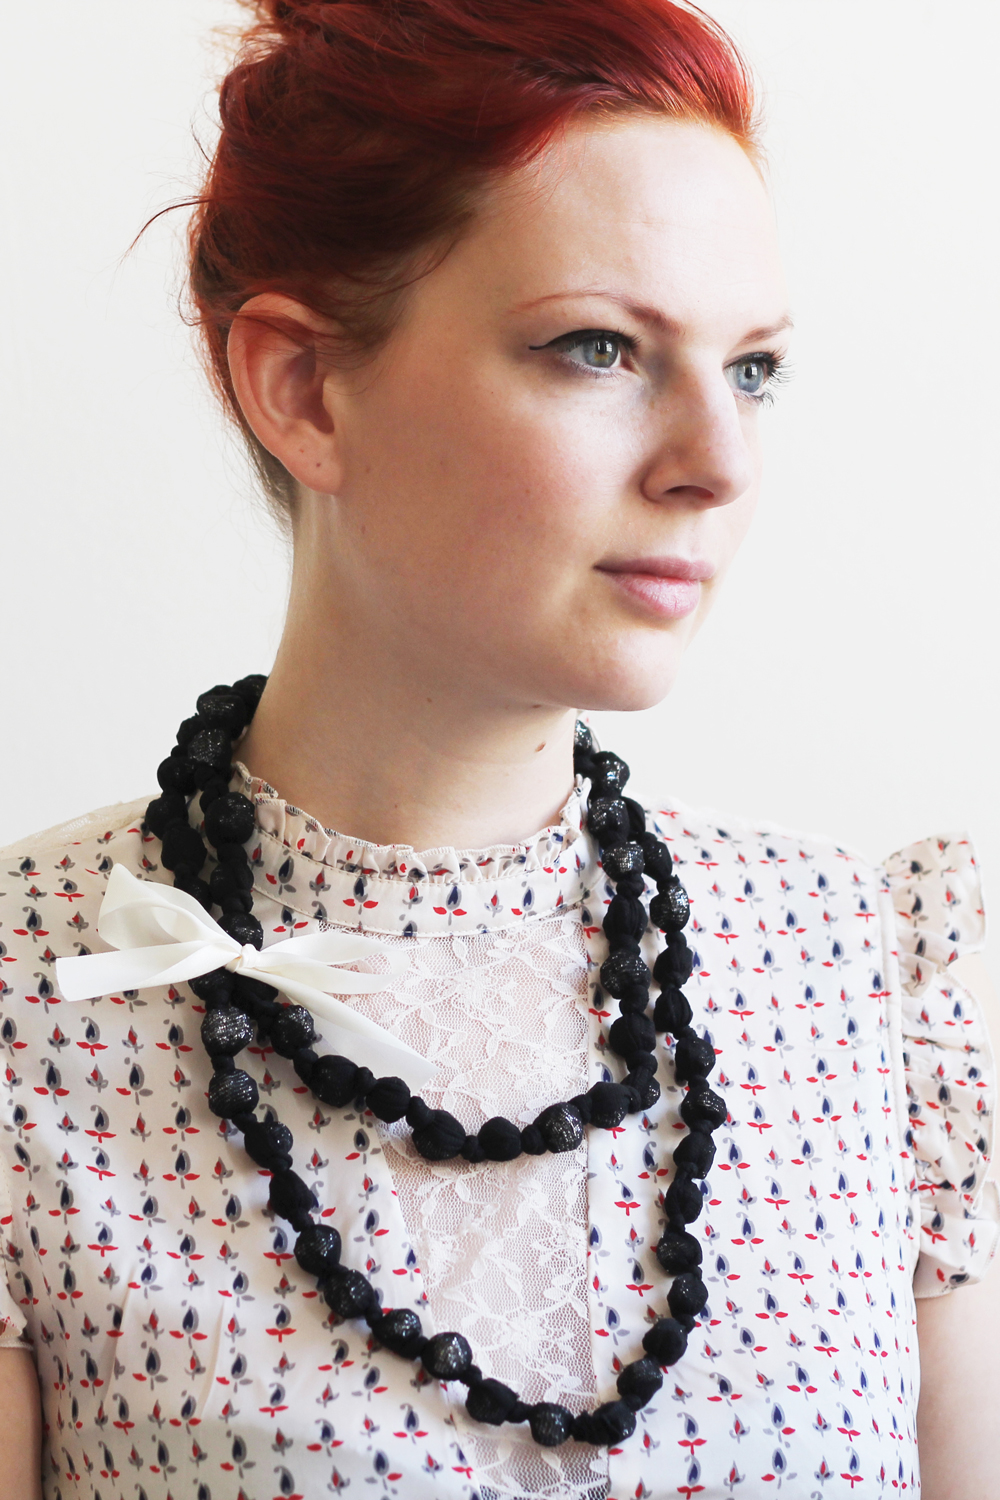 DIY   UPCYCLED TIGHTS NECKLACE